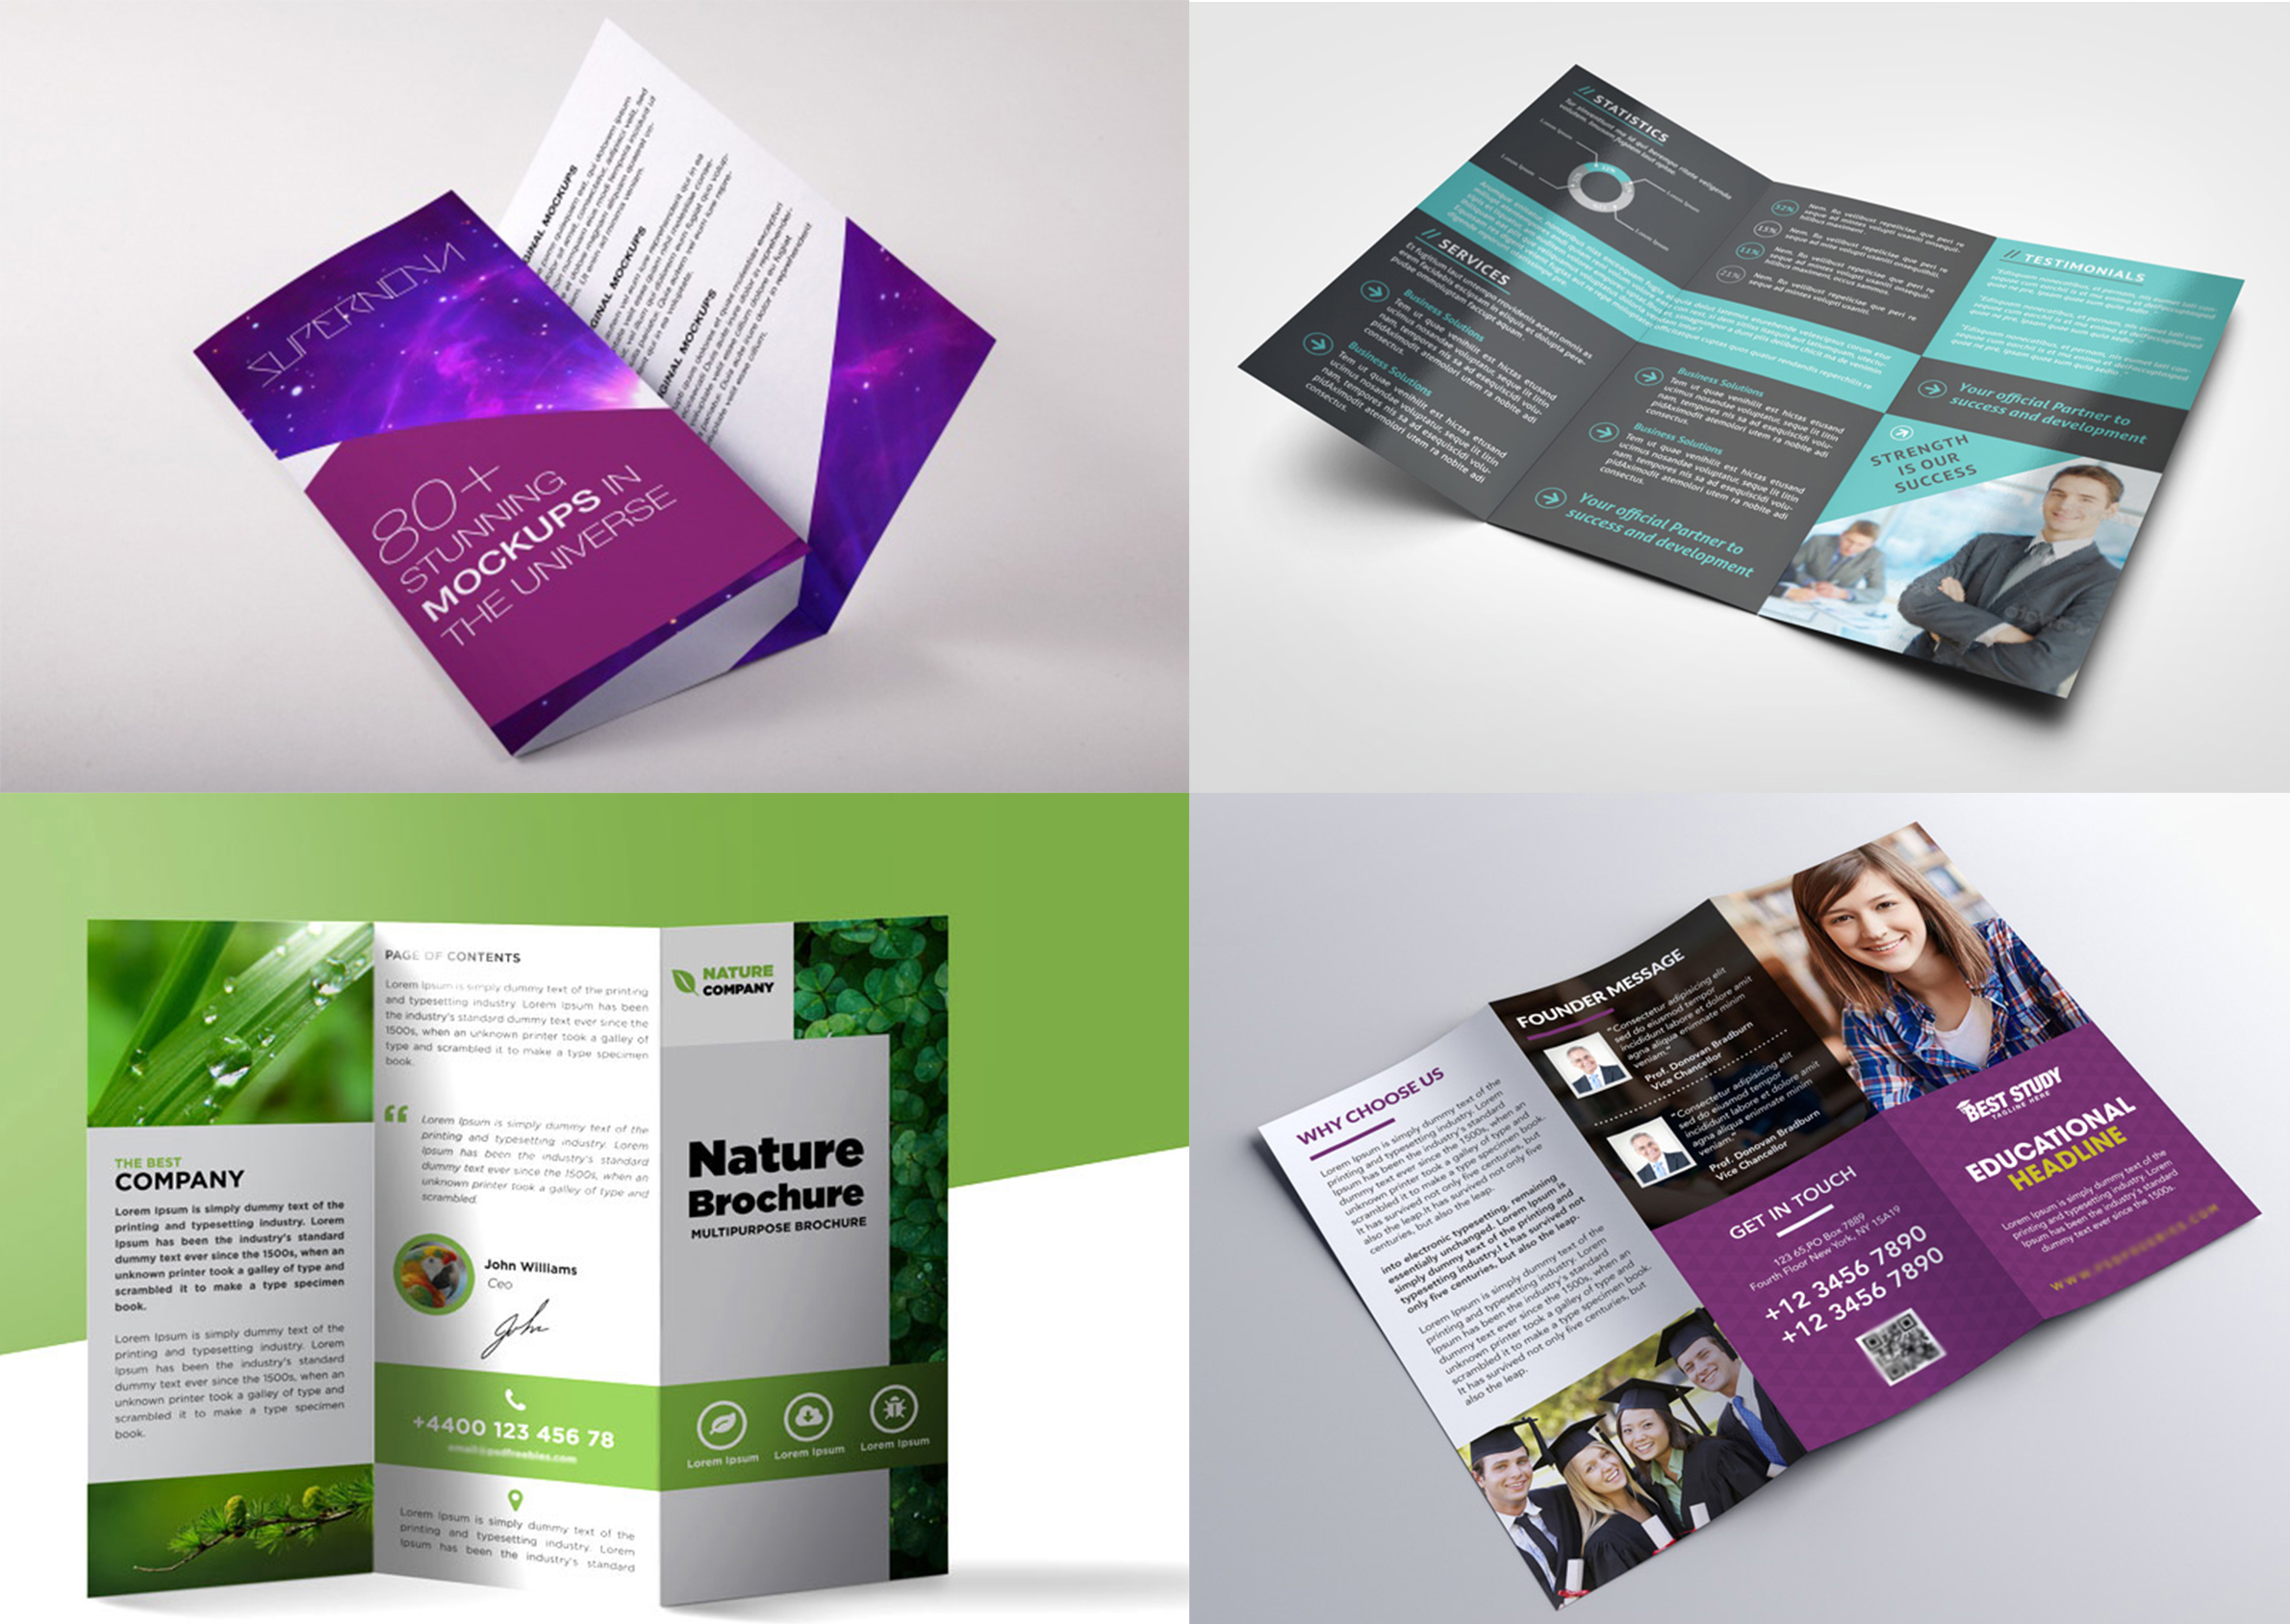 design creative flyer brochure poster for you